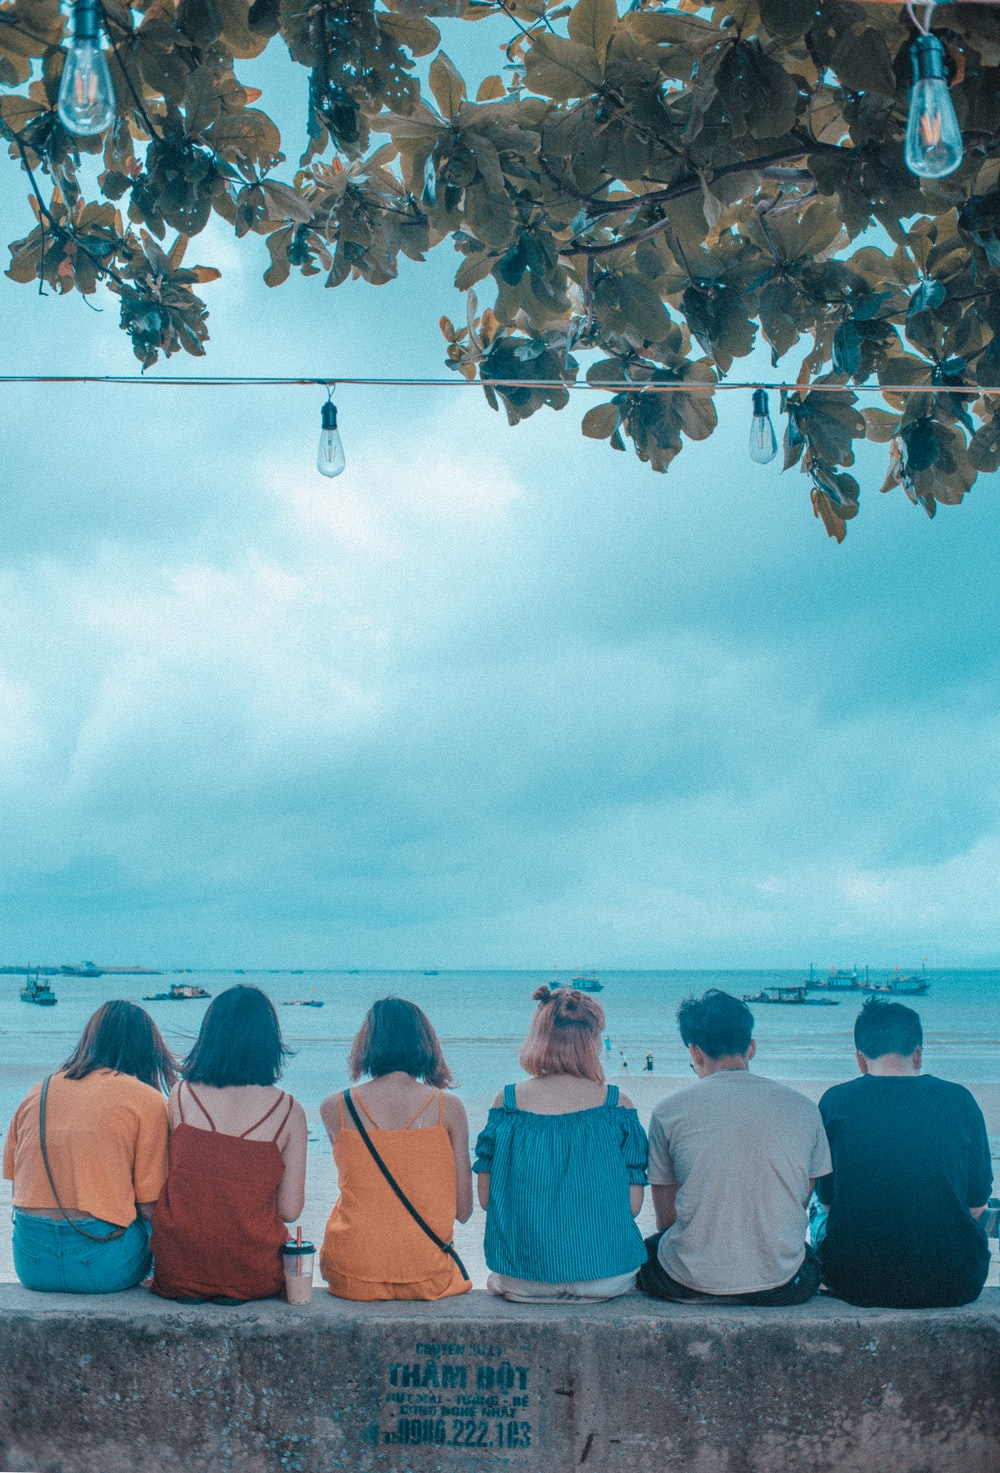 six people sitting and facing near blue sea under blue and white skies during daytime